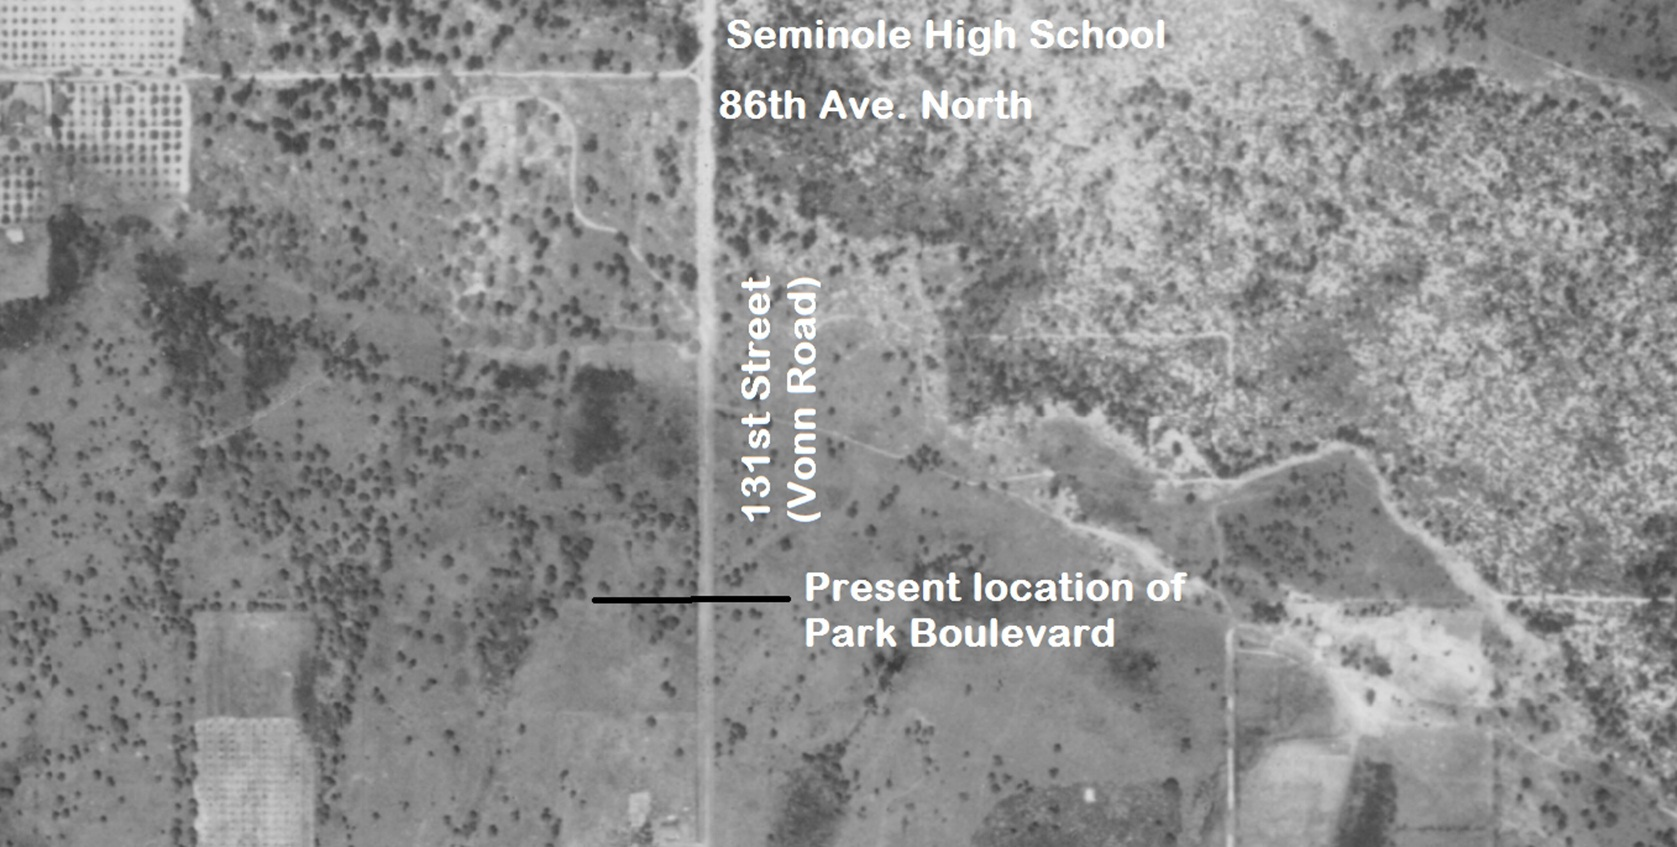 An aerial map of the Oakhurst Cemetery in Seminole Florida 1943